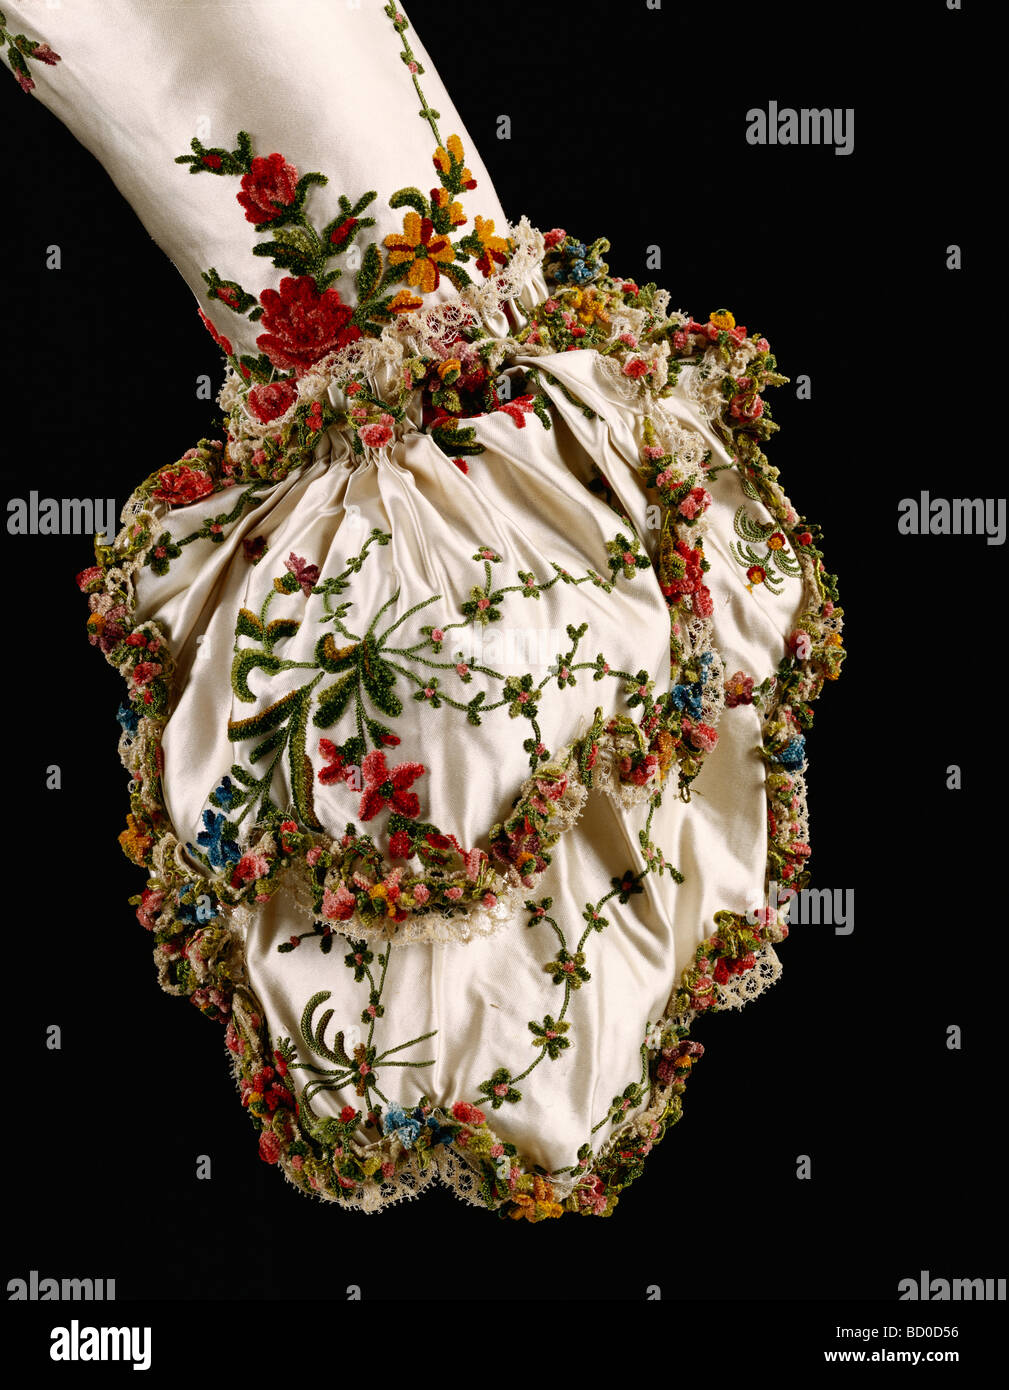 Sleeve, detail. England, late 18th century - Stock Image